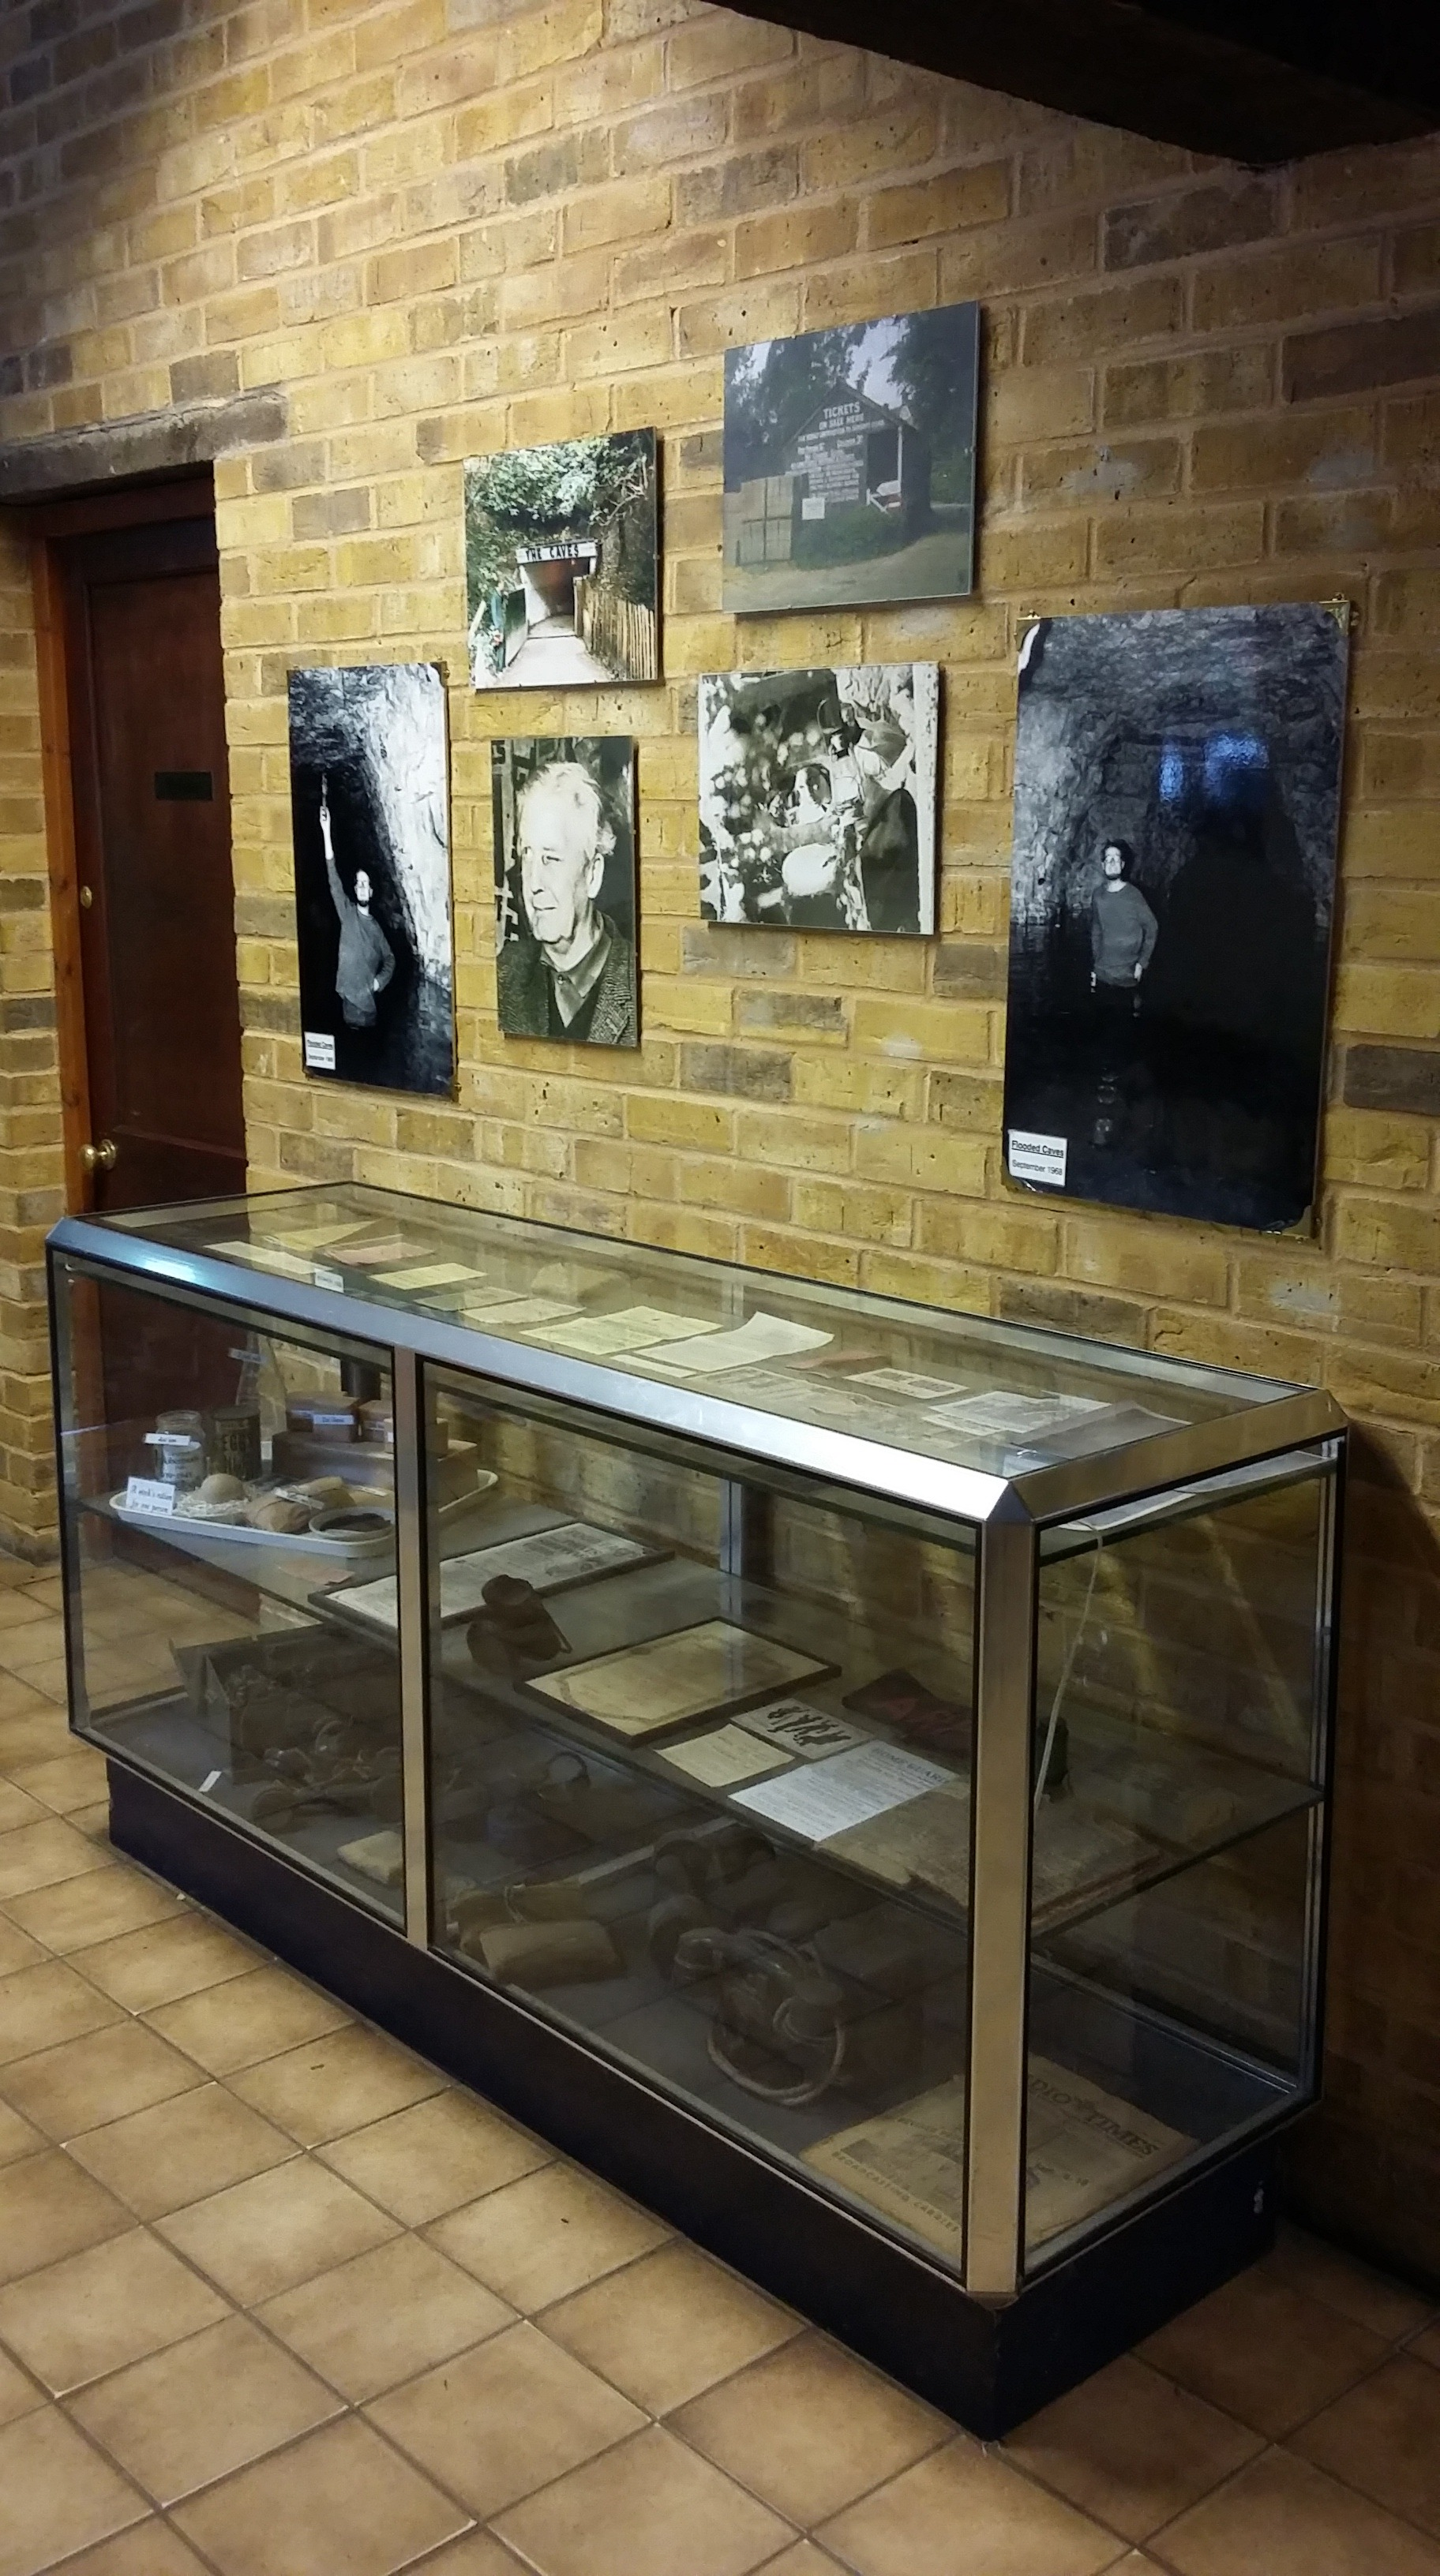 Artefacts on display